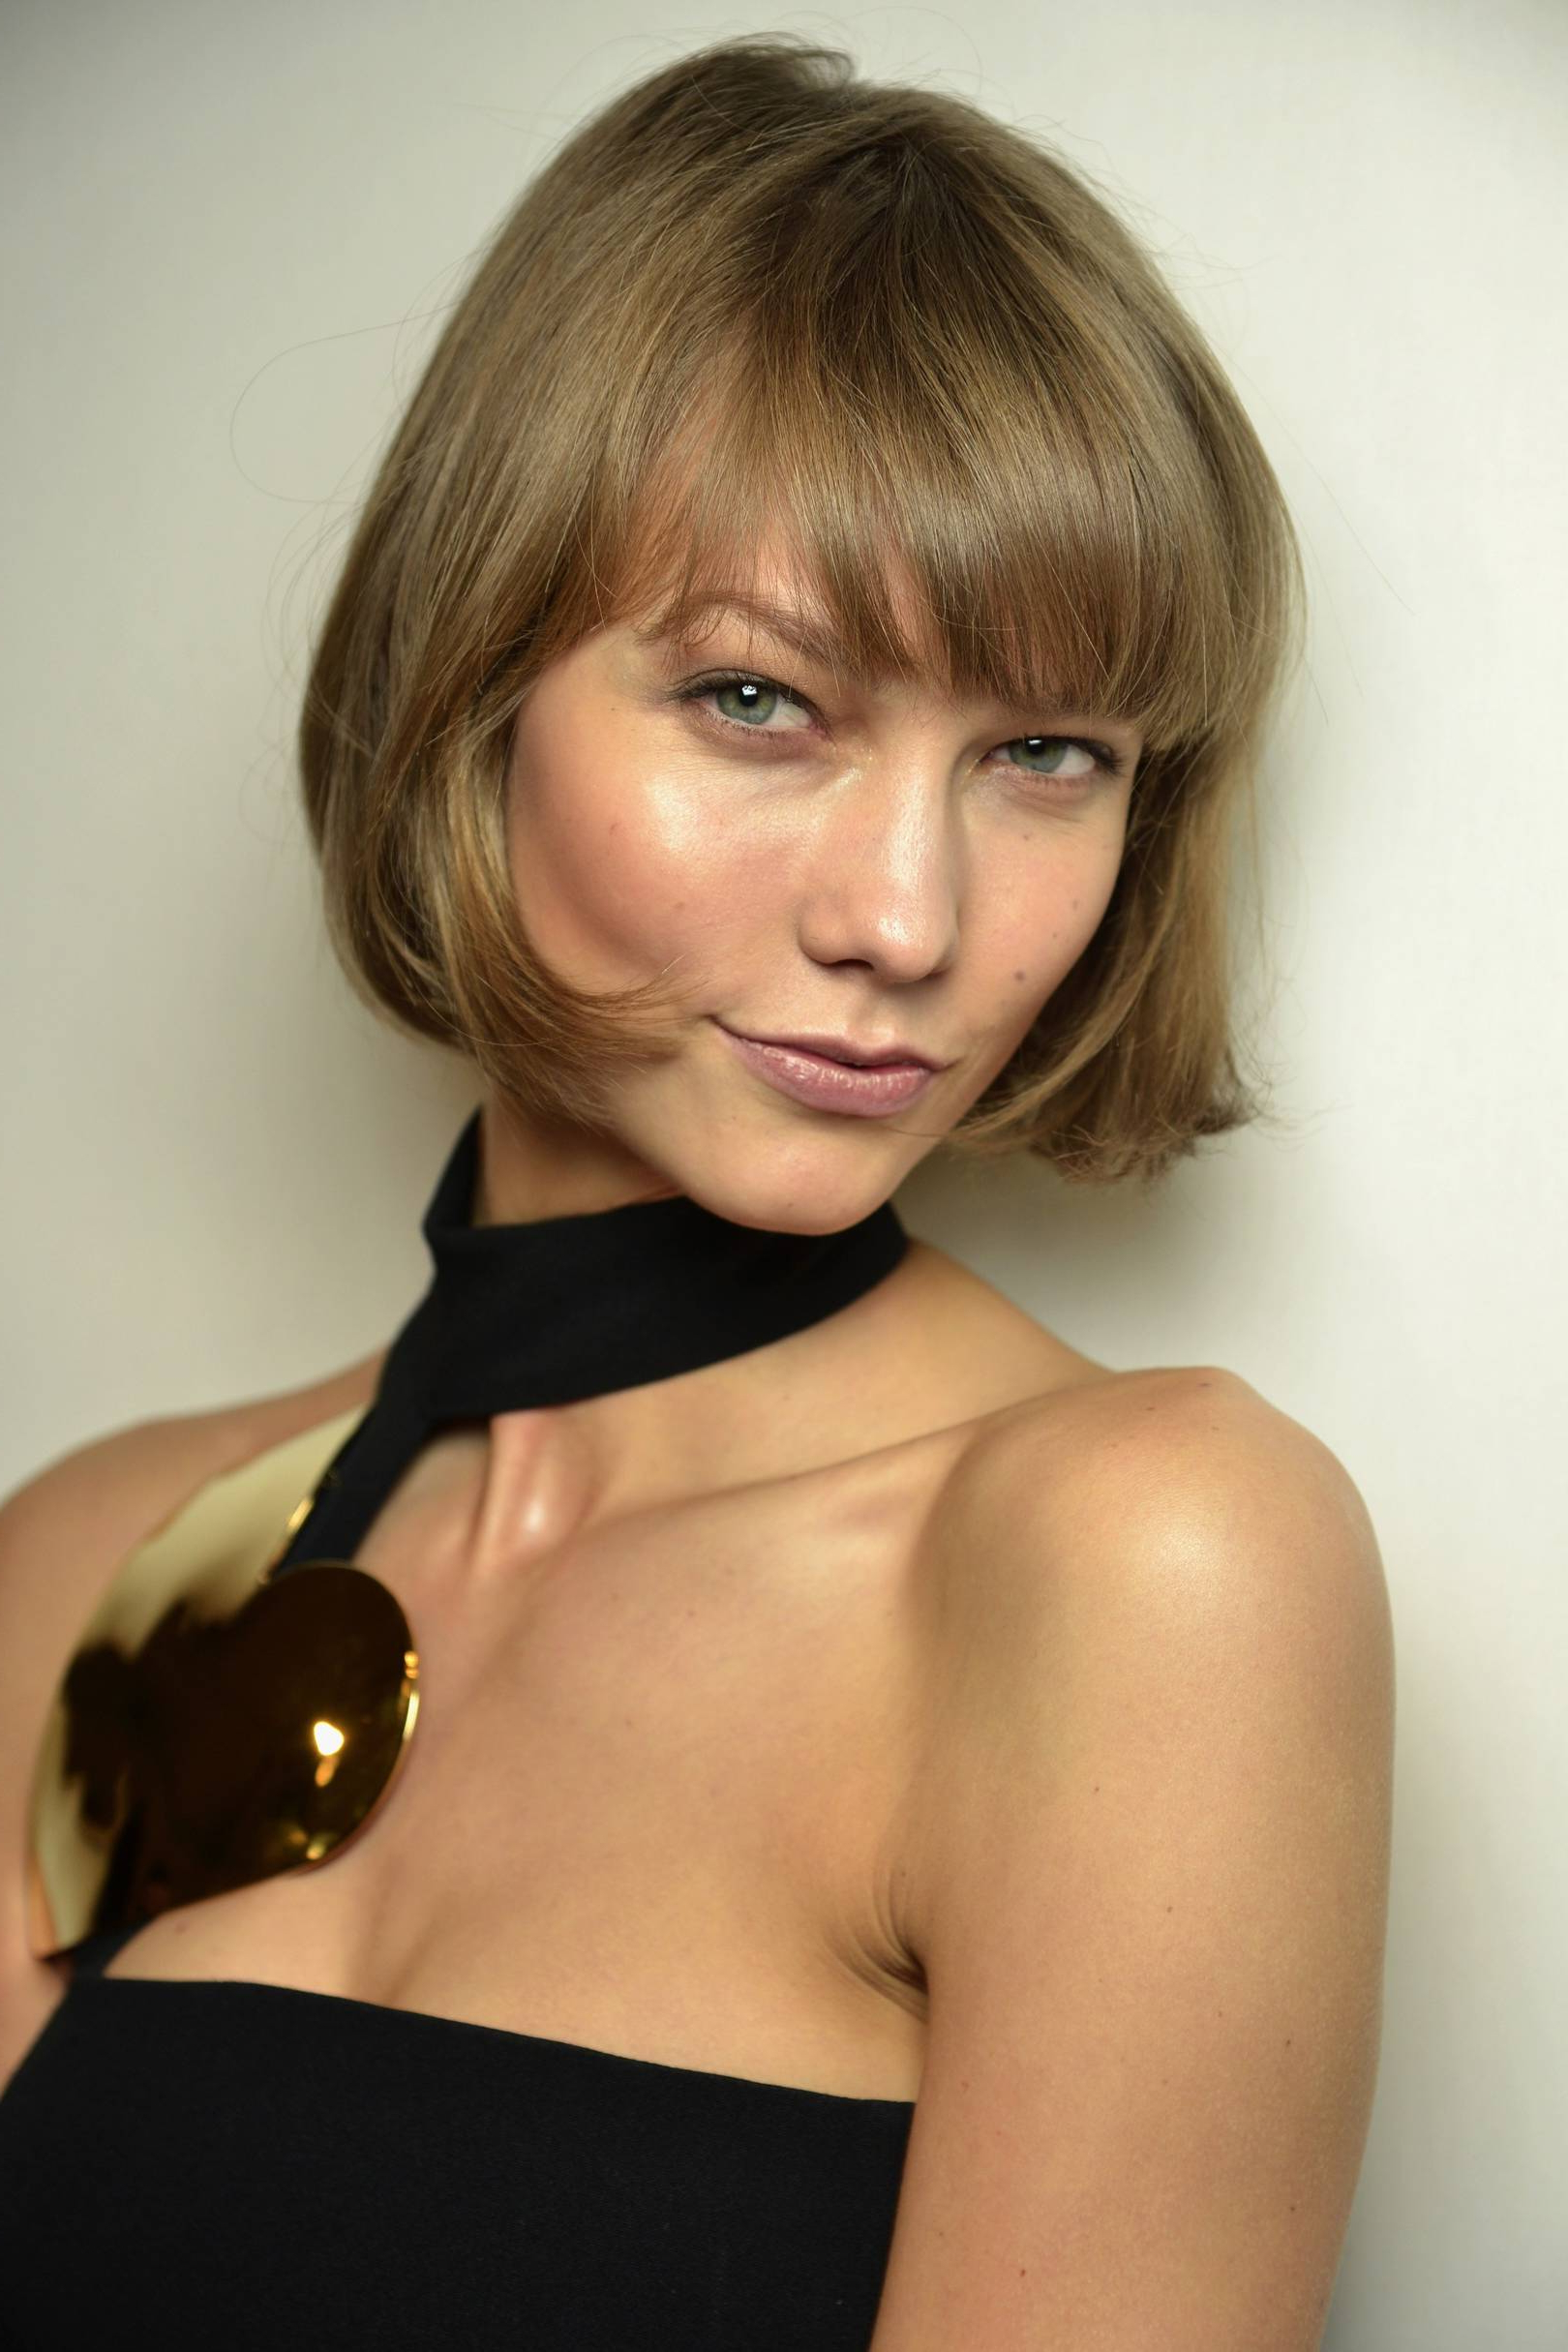 Model Karlie Kloss Cried Over Bob Haircut/hairstyle   British Vogue Intended For Karlie Kloss Short Haircuts (View 6 of 25)